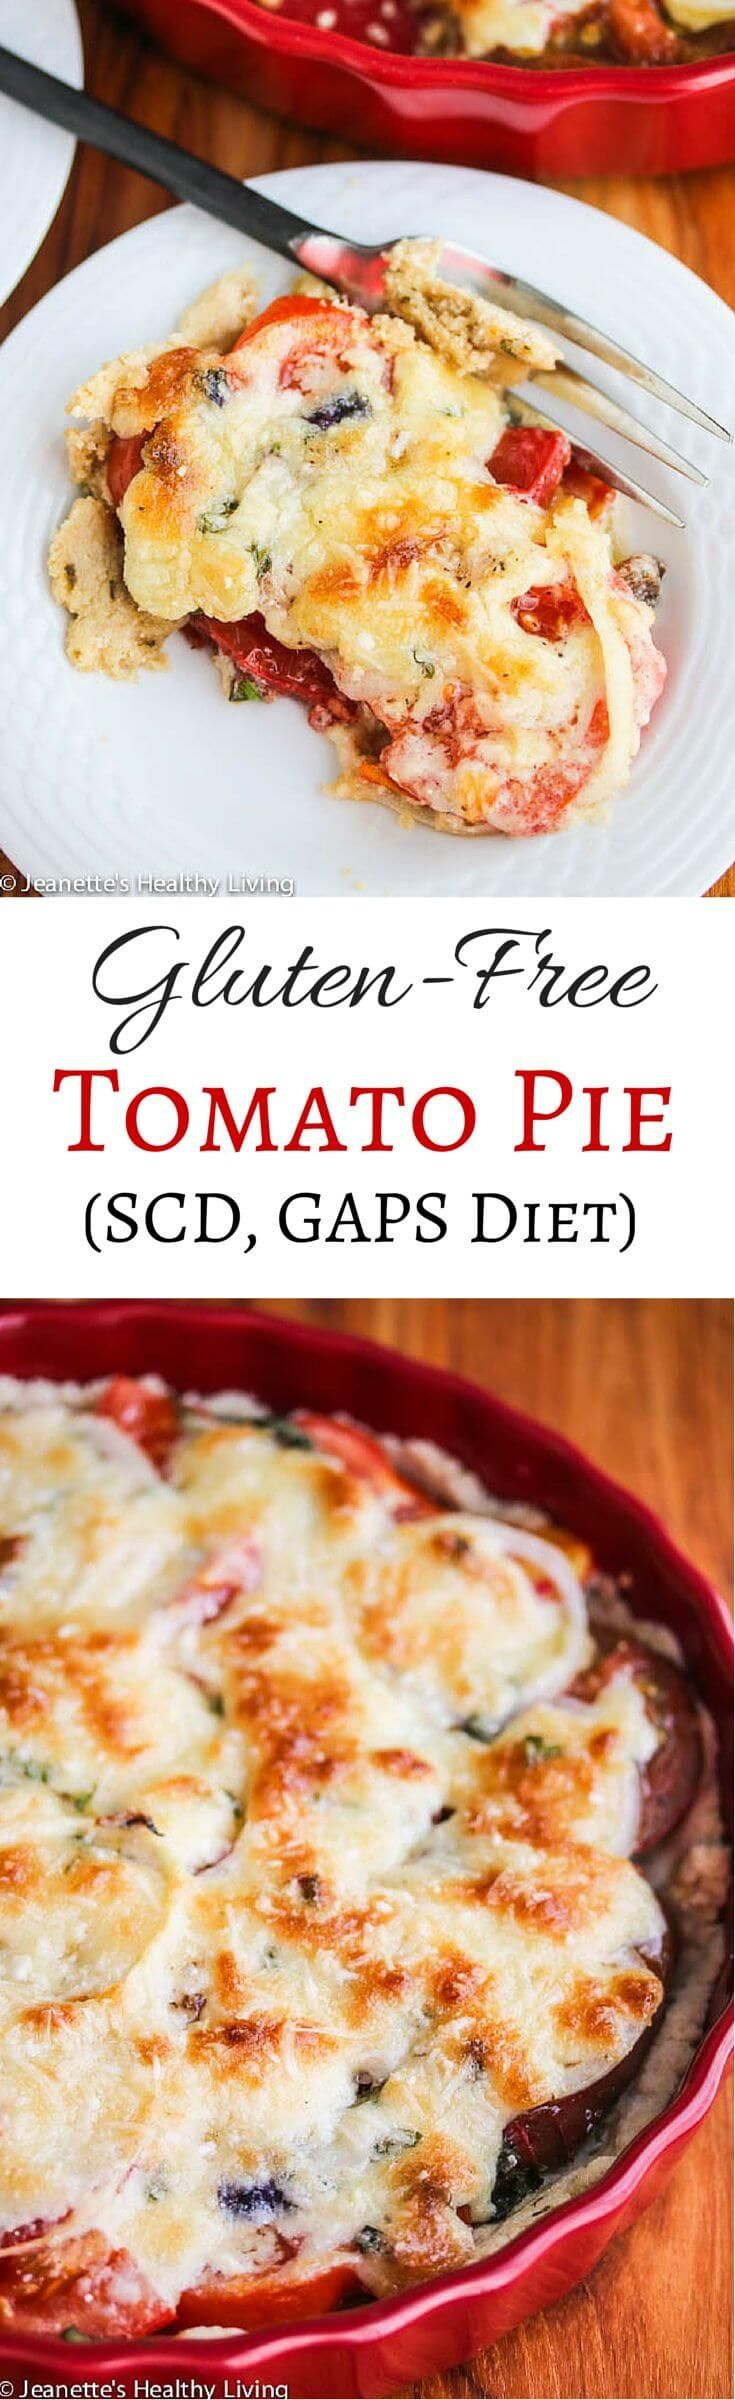 Gluten-Free Tomato Pie Recipe (SCD GAPS Diet) - scented with fresh rosemary and basil, this summer pie is delicious and perfect for lunch or dinner ~ http://jeanetteshealthyliving.com